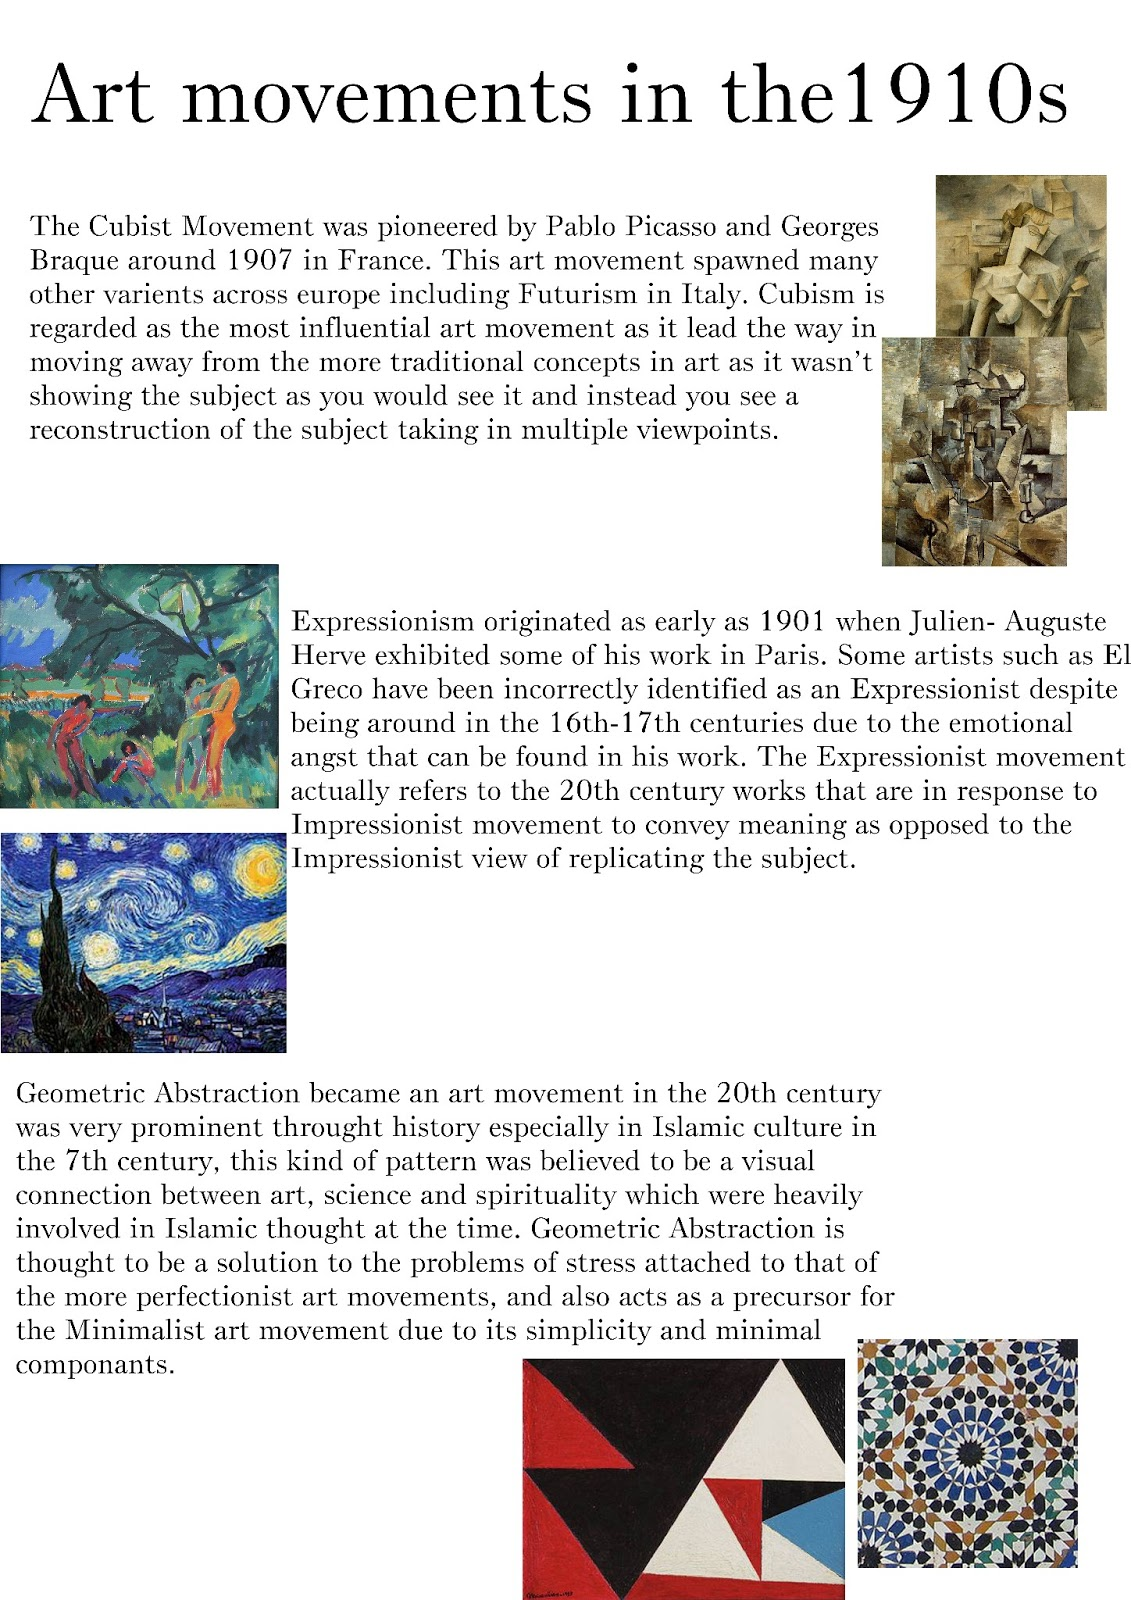 an introduction to the history of art movement cubism in the 20th century Symbolist experimentation is the foundation of many 20th-century an introduction to nineteenth century art using the tools of the 'new' art history.